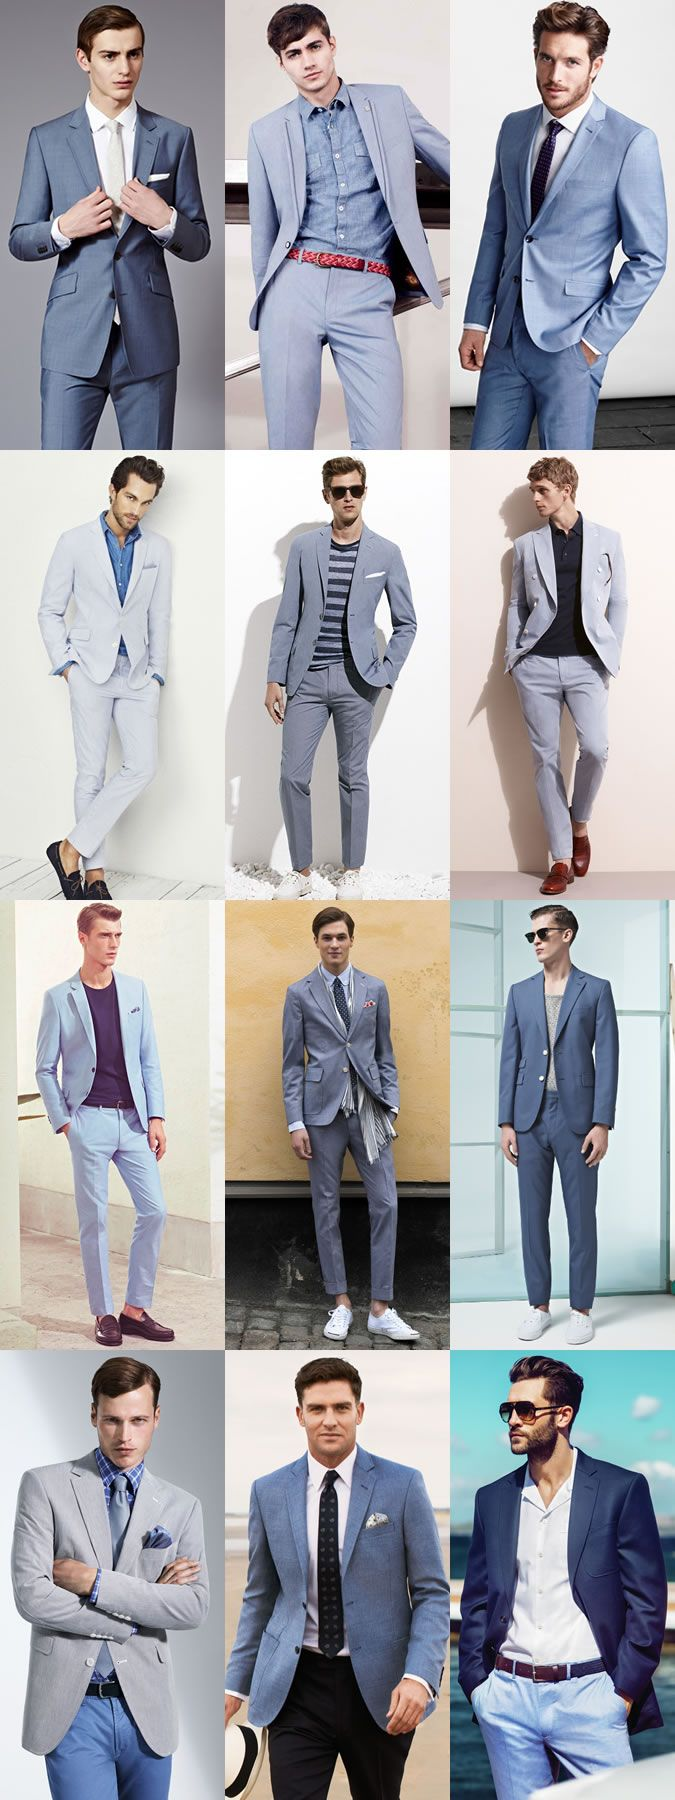 5 Key Men's Suit Styles For SS14 - http://www.295luv.com/fashion/5-key-mens-suit-styles-for-ss14.html